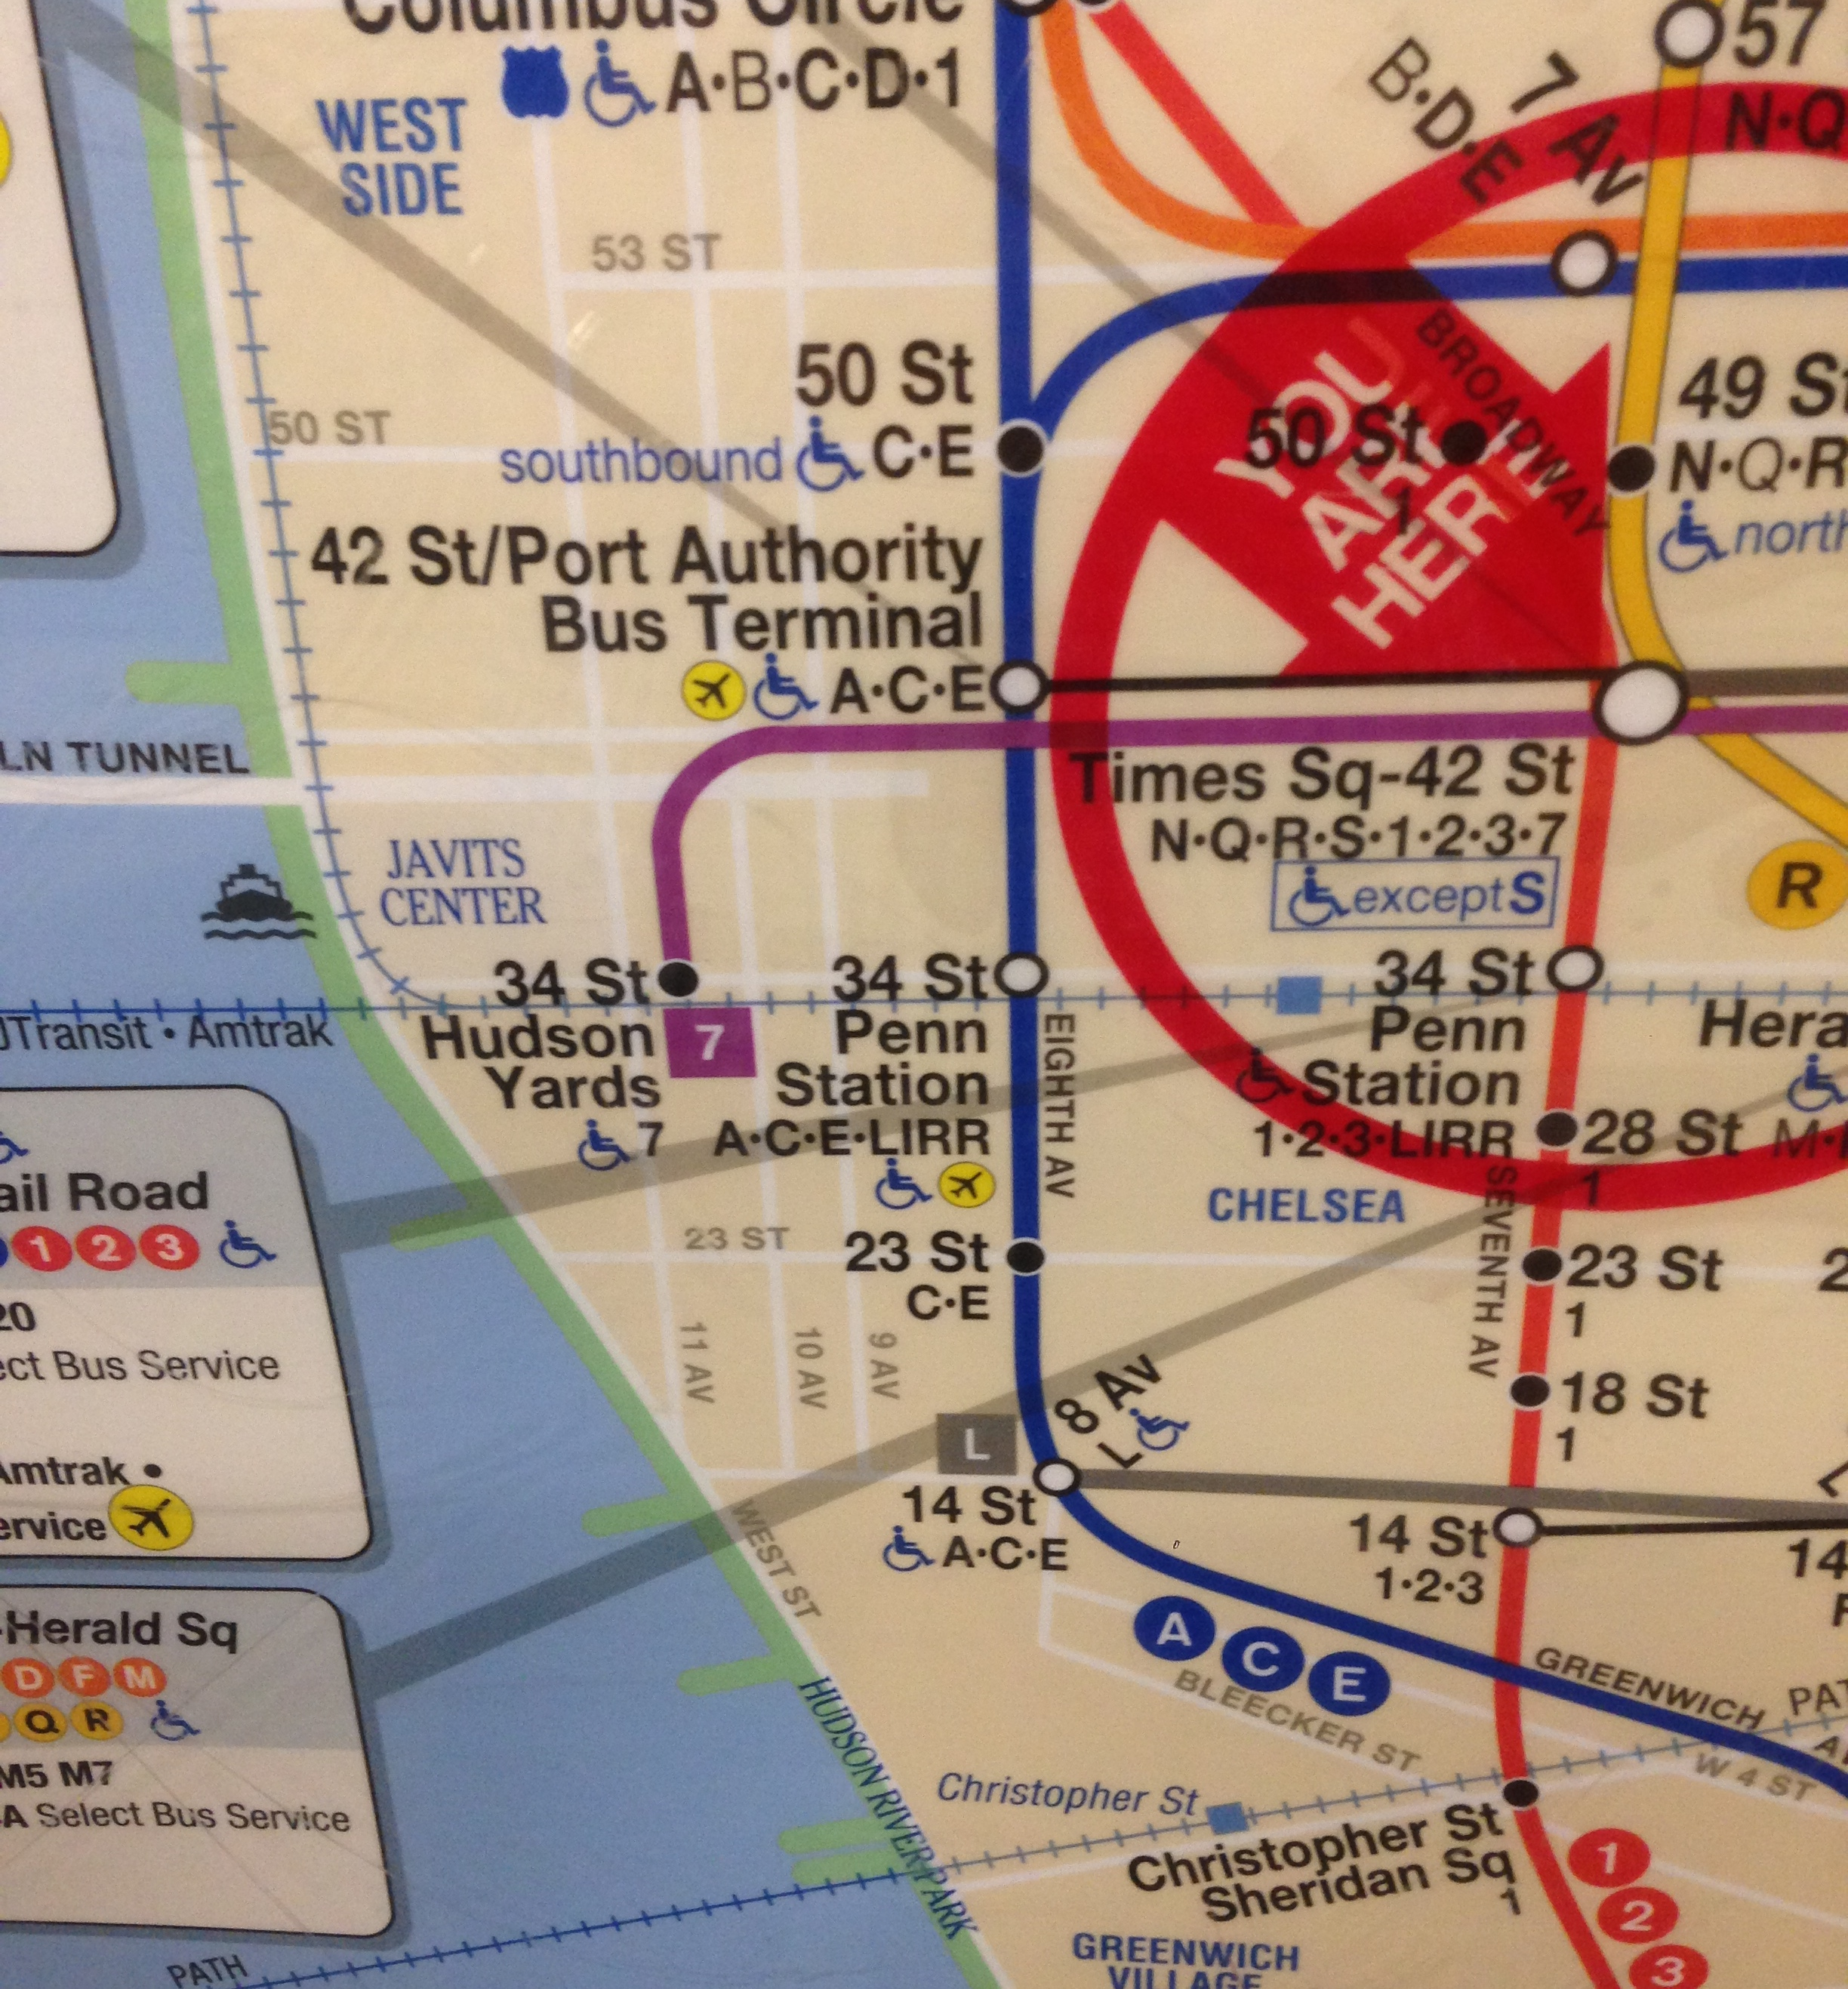 Subway Map Times Square.File Nyc Subway Map At Times Square Showing Hudson Yards Jpg